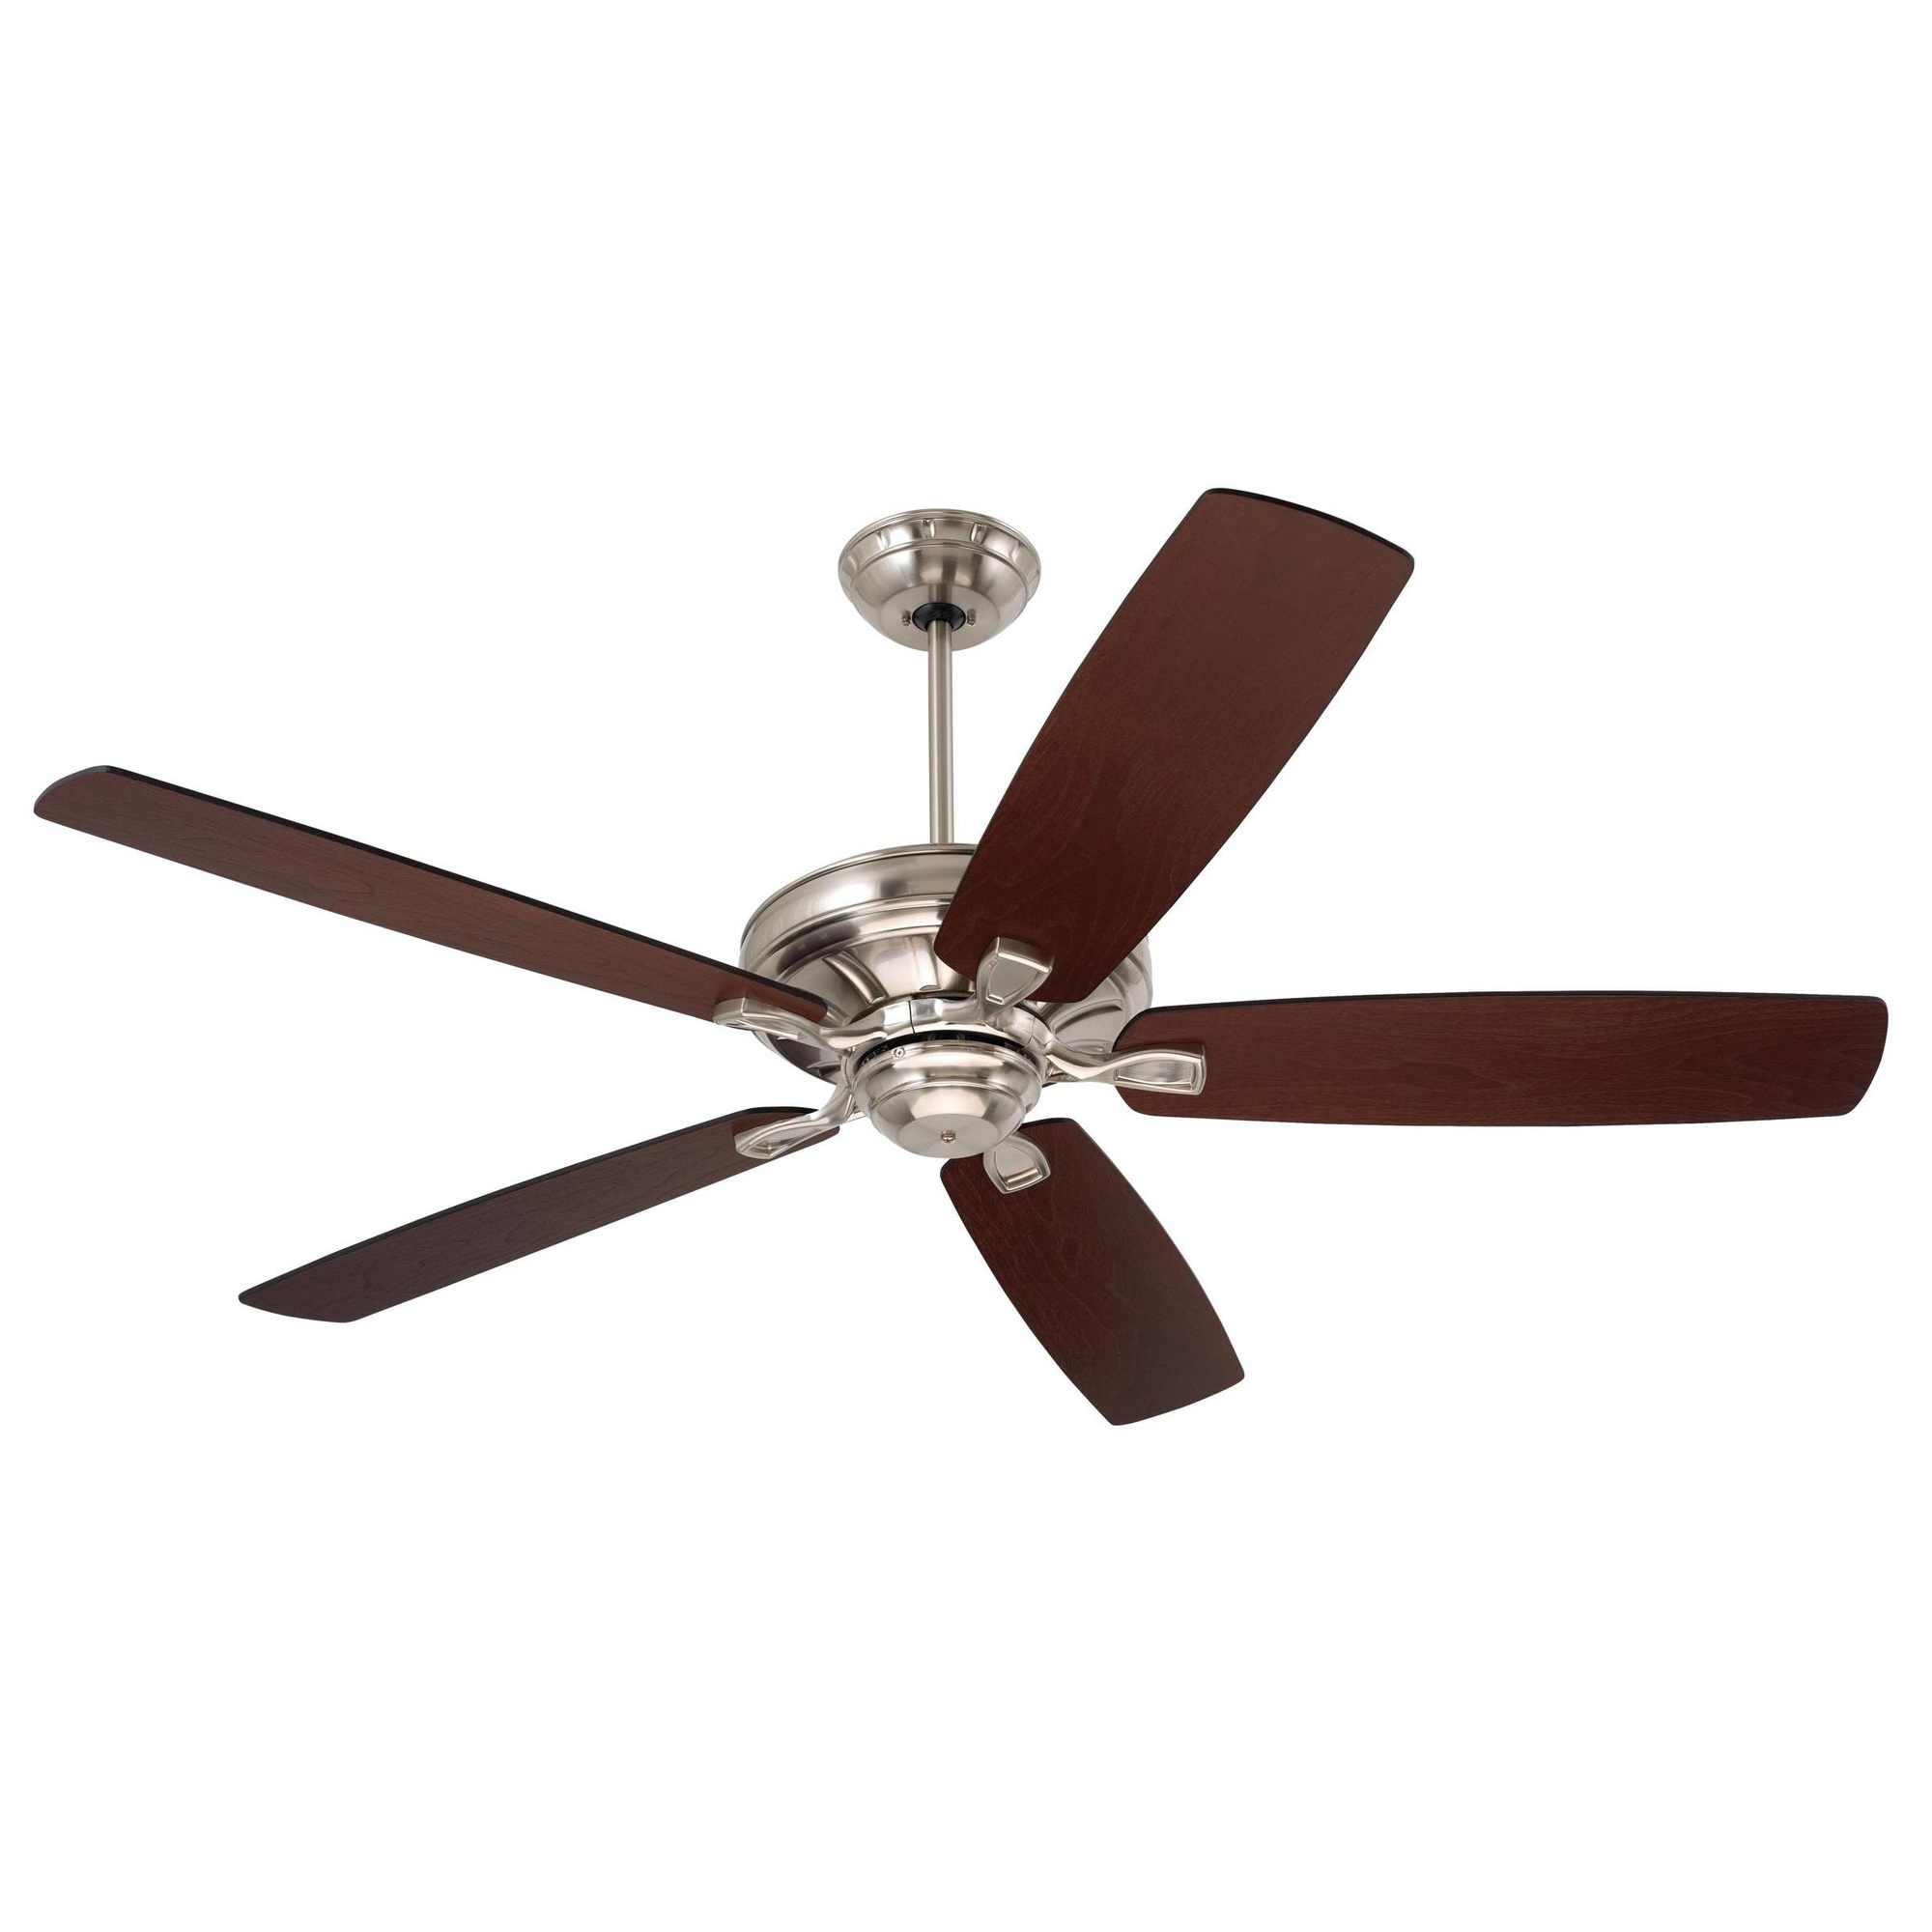 Emerson cf784bs ceiling fan 60 inch 5 blade brushed steel carrera emerson cf784bs ceiling fan 60 inch 5 blade brushed steel carrera grande eco aloadofball Choice Image